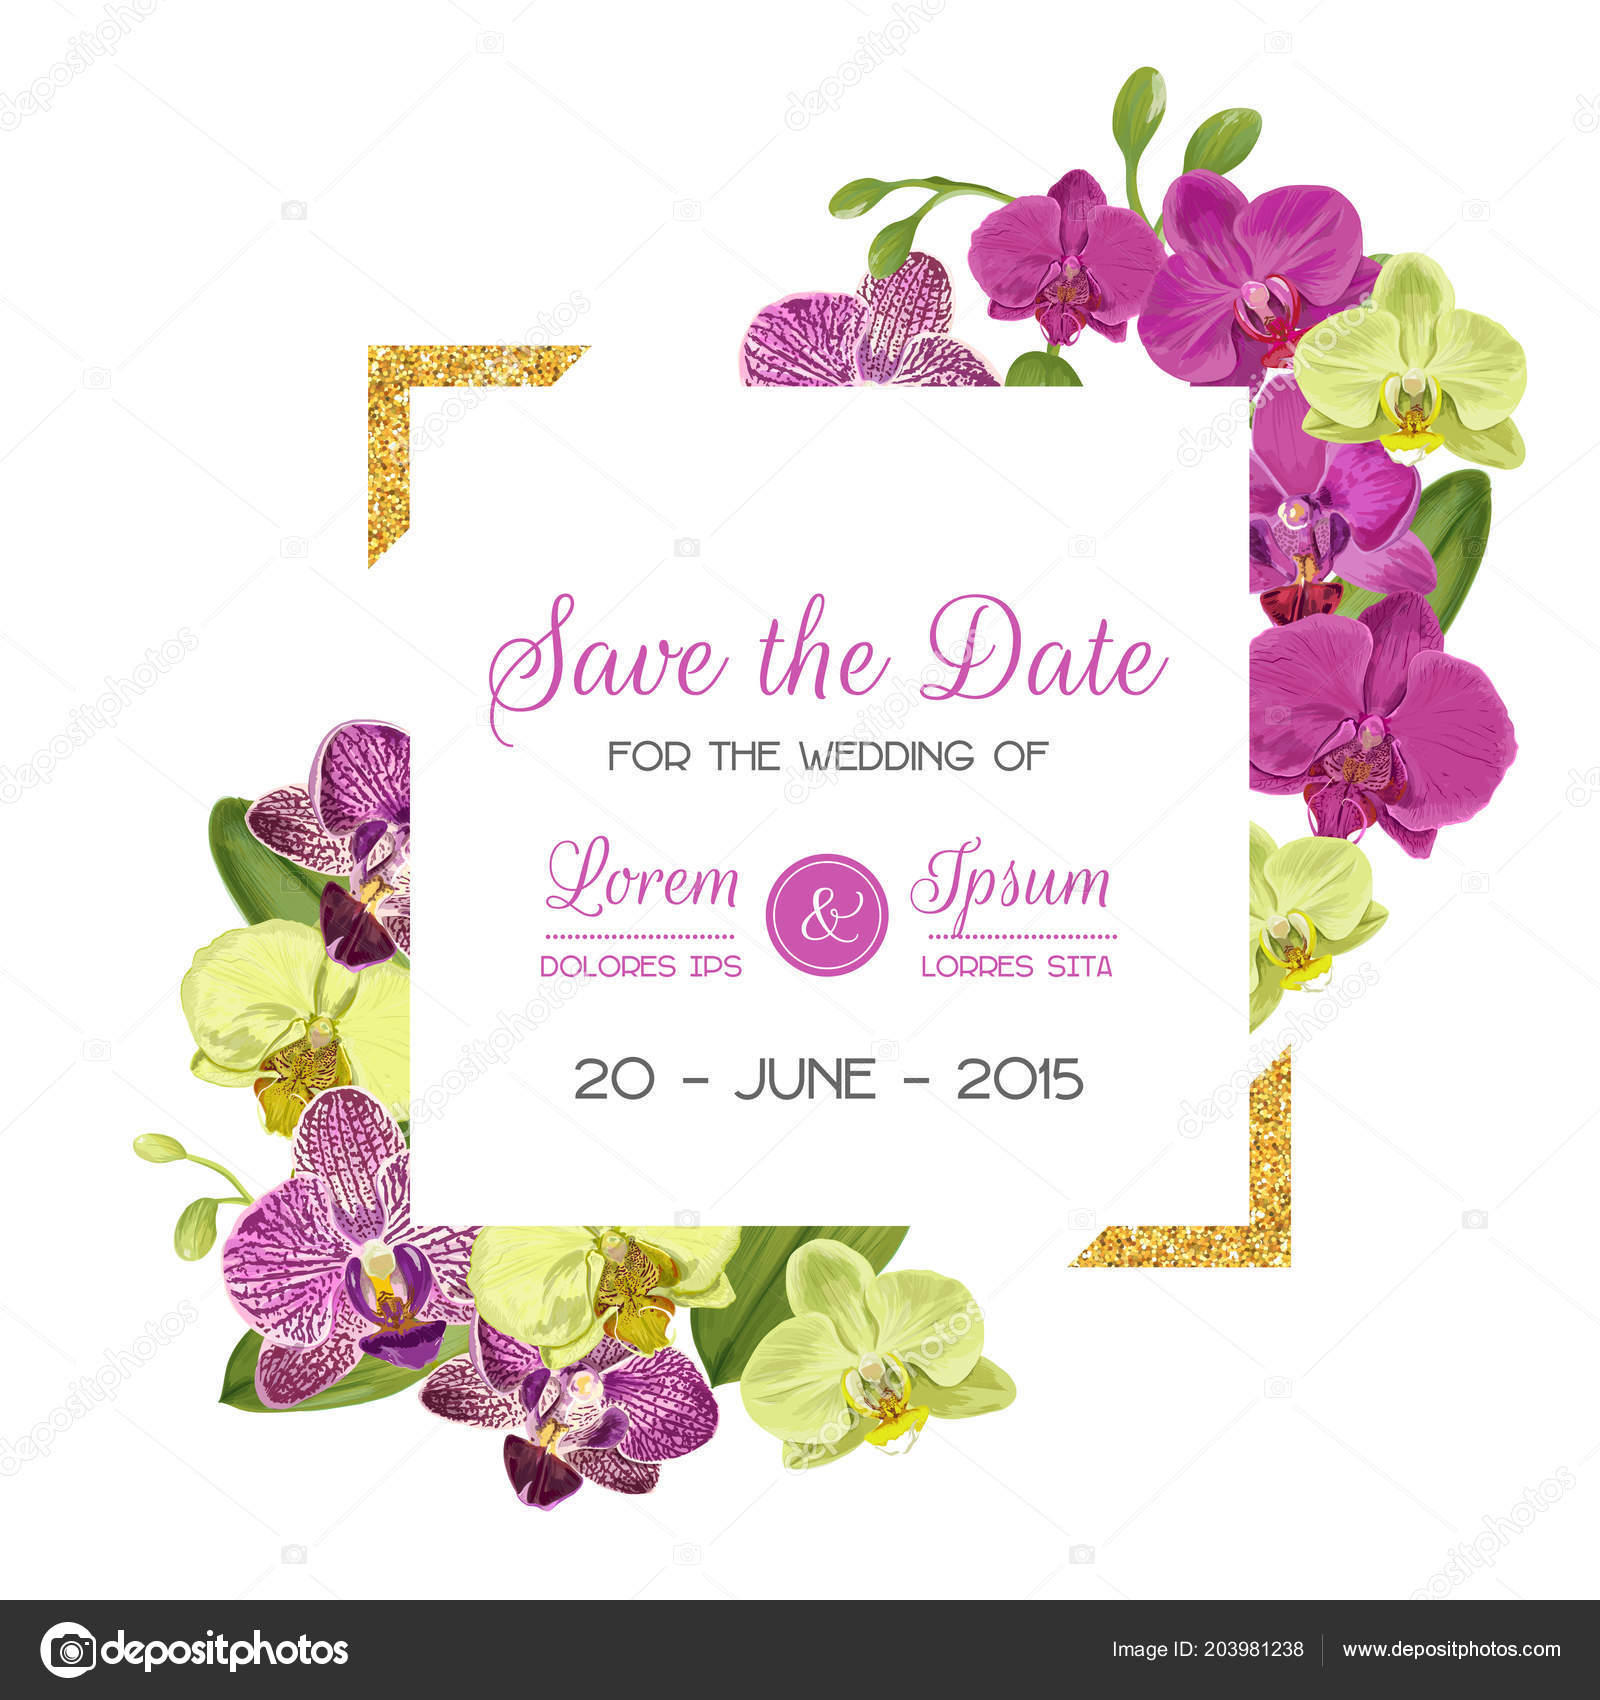 Wedding Invitation Layout Template With Orchid Flowers Save The Date Floral Card Golden Frame